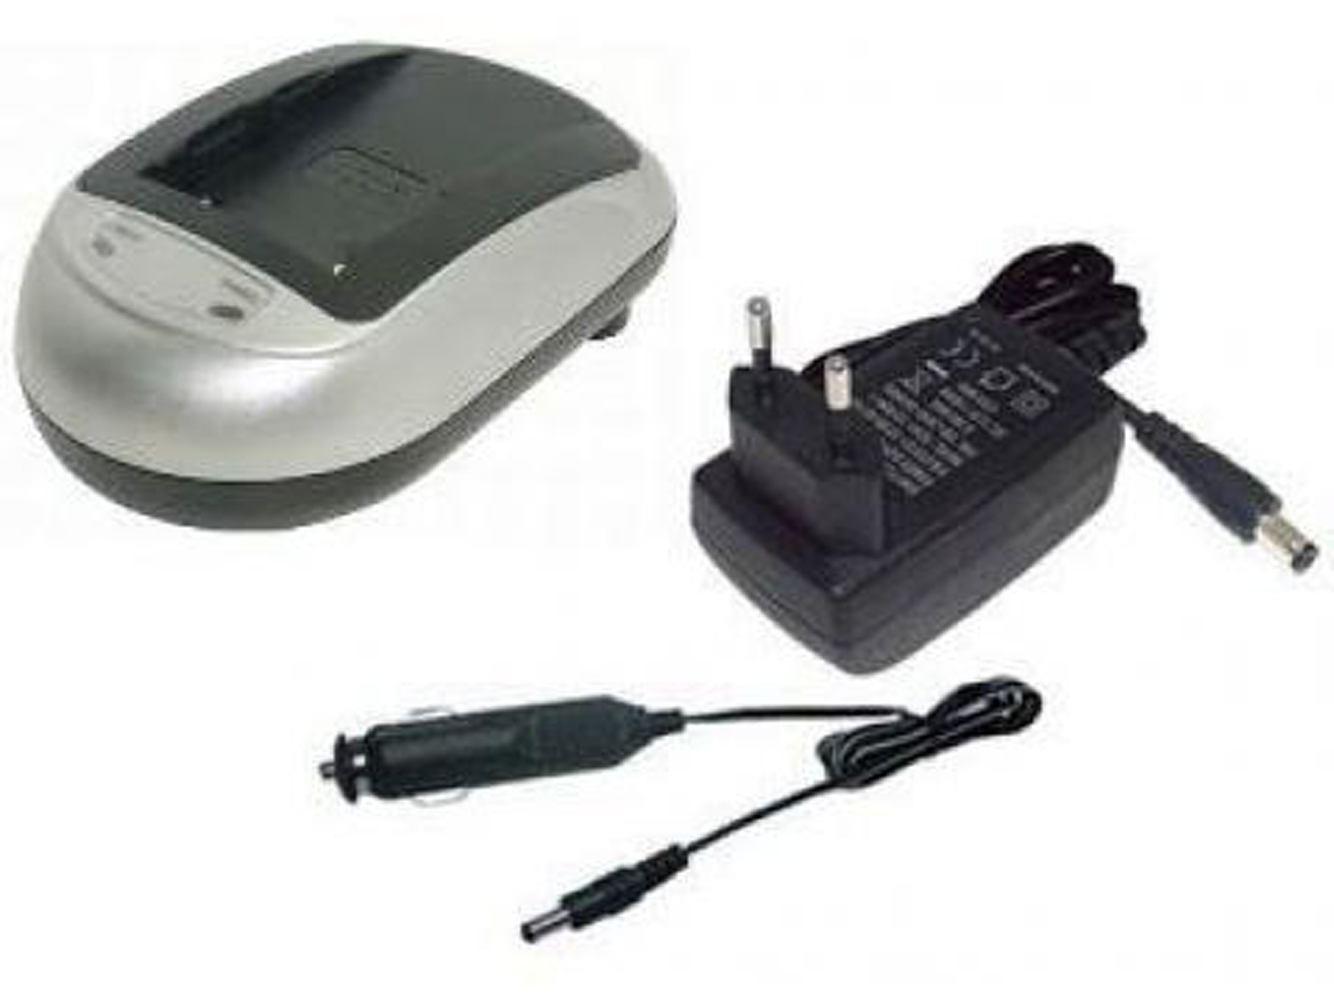 Battery Charger for SAMSUNG SB-90ASL, SB-P90A, SB-P90AB, SB-P90ASL